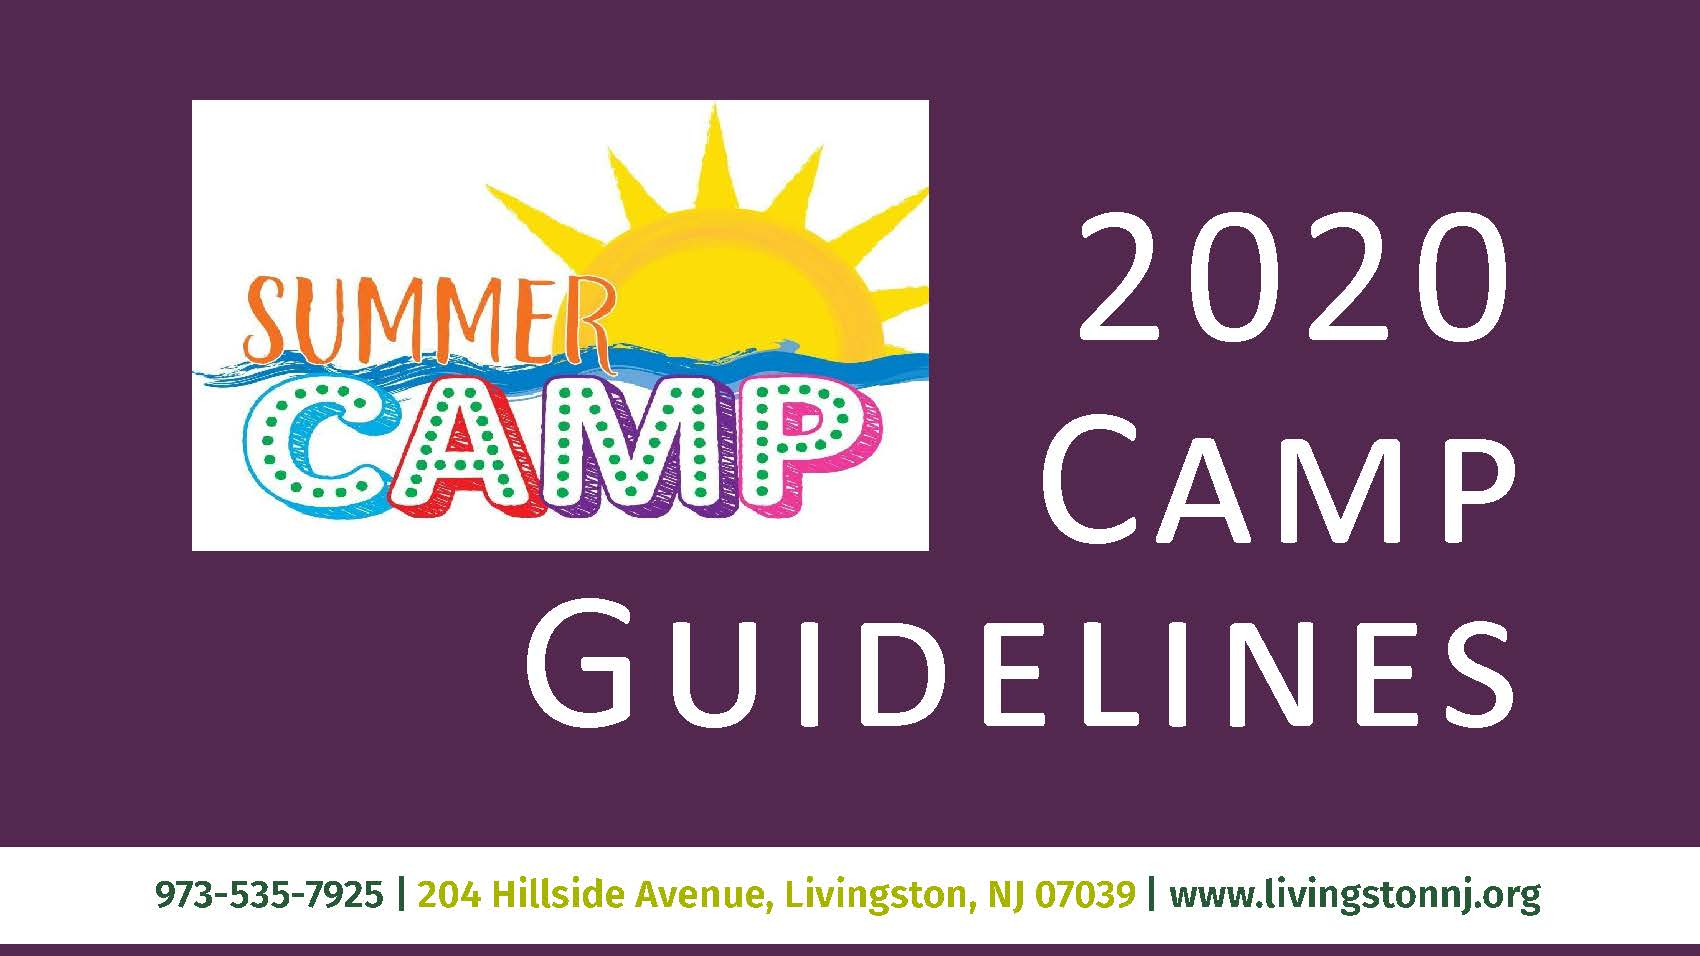 Camp guideline banner